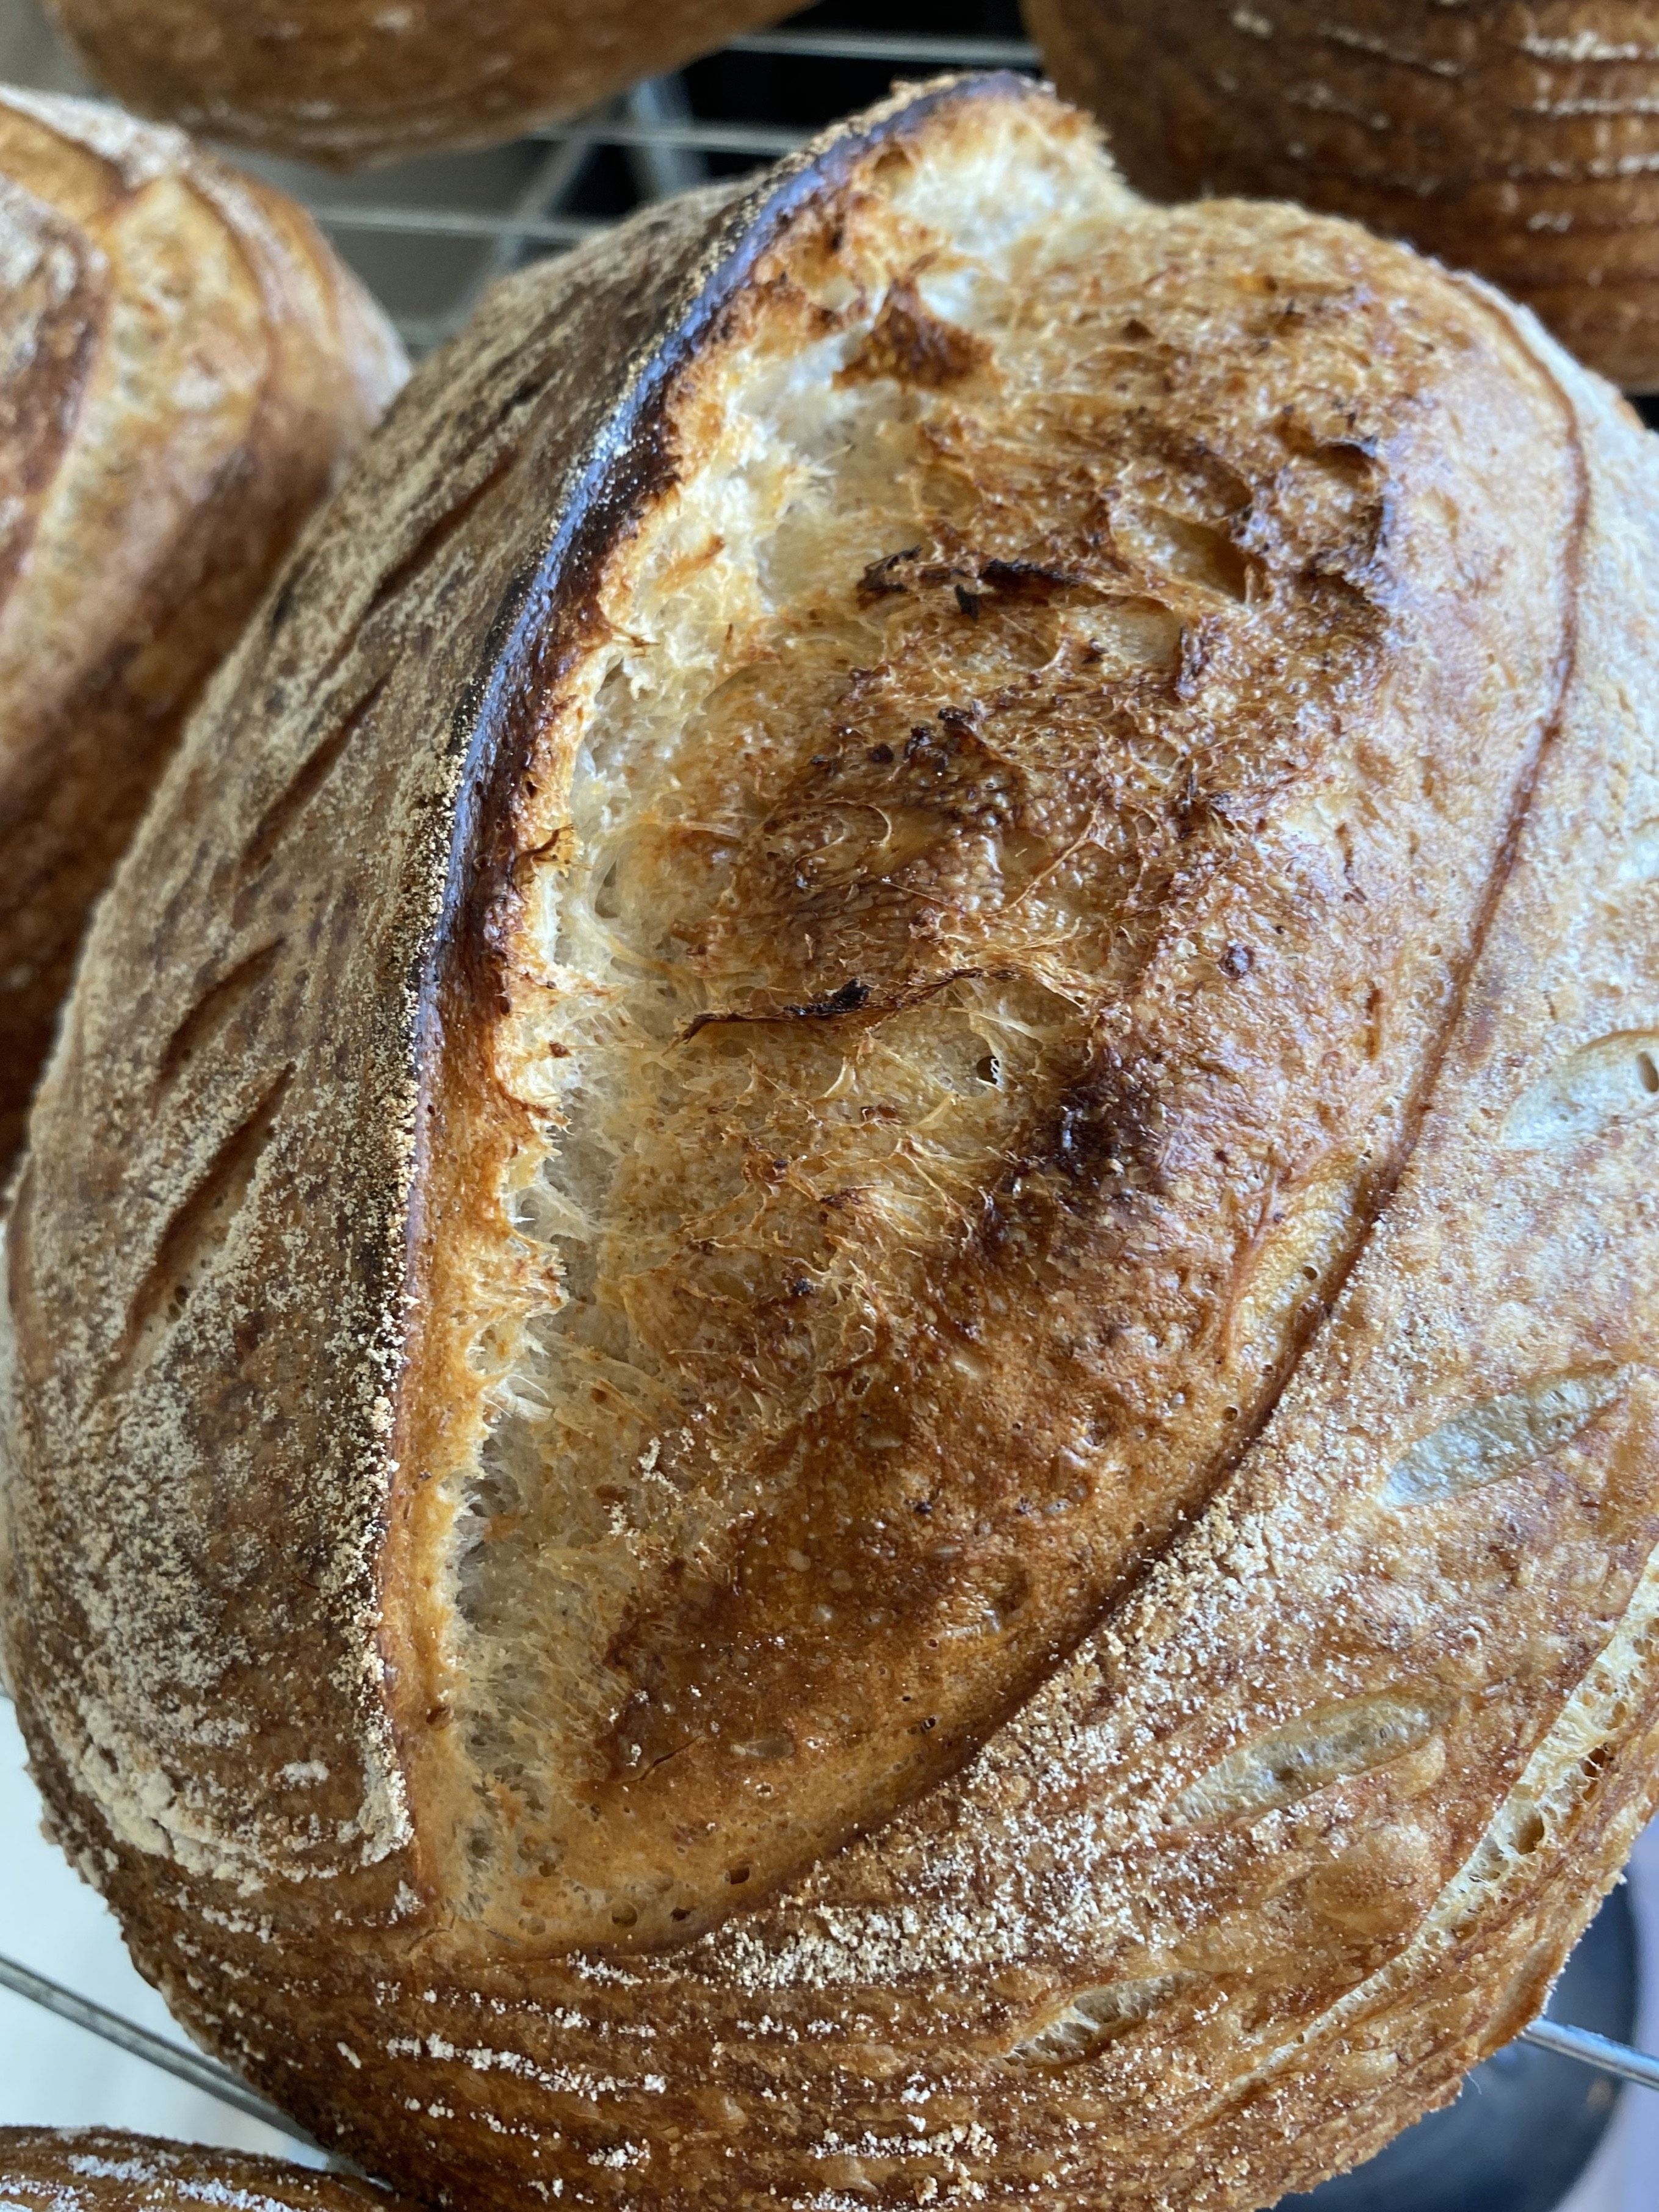 The Imperfect Bakery's sourdough